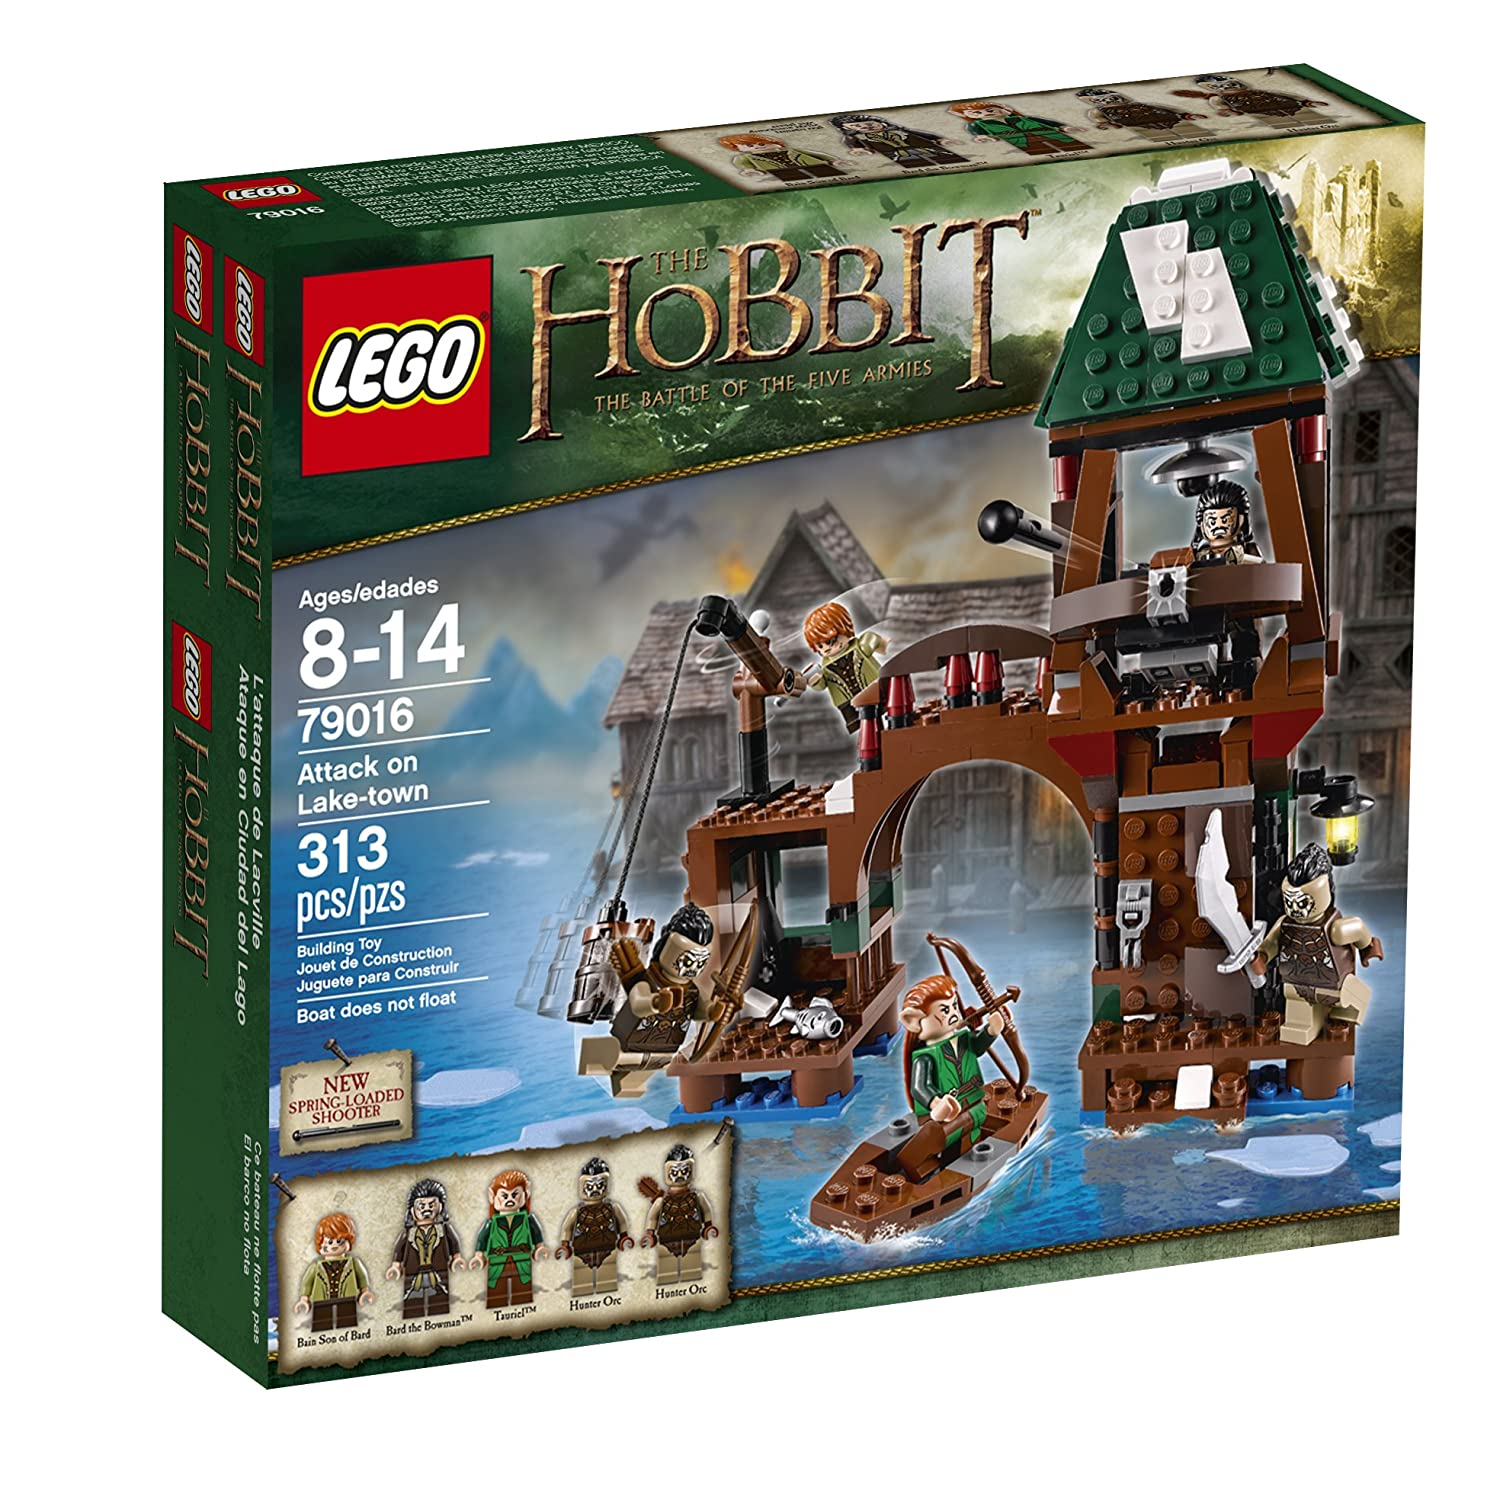 LEGO Hobbit 79016 Attack on Lake-town Includes 5 minifigures with assorted weapons: Bain son of Bard, Bard the Bowman, Tauriel and 2 Hunter Orcs.